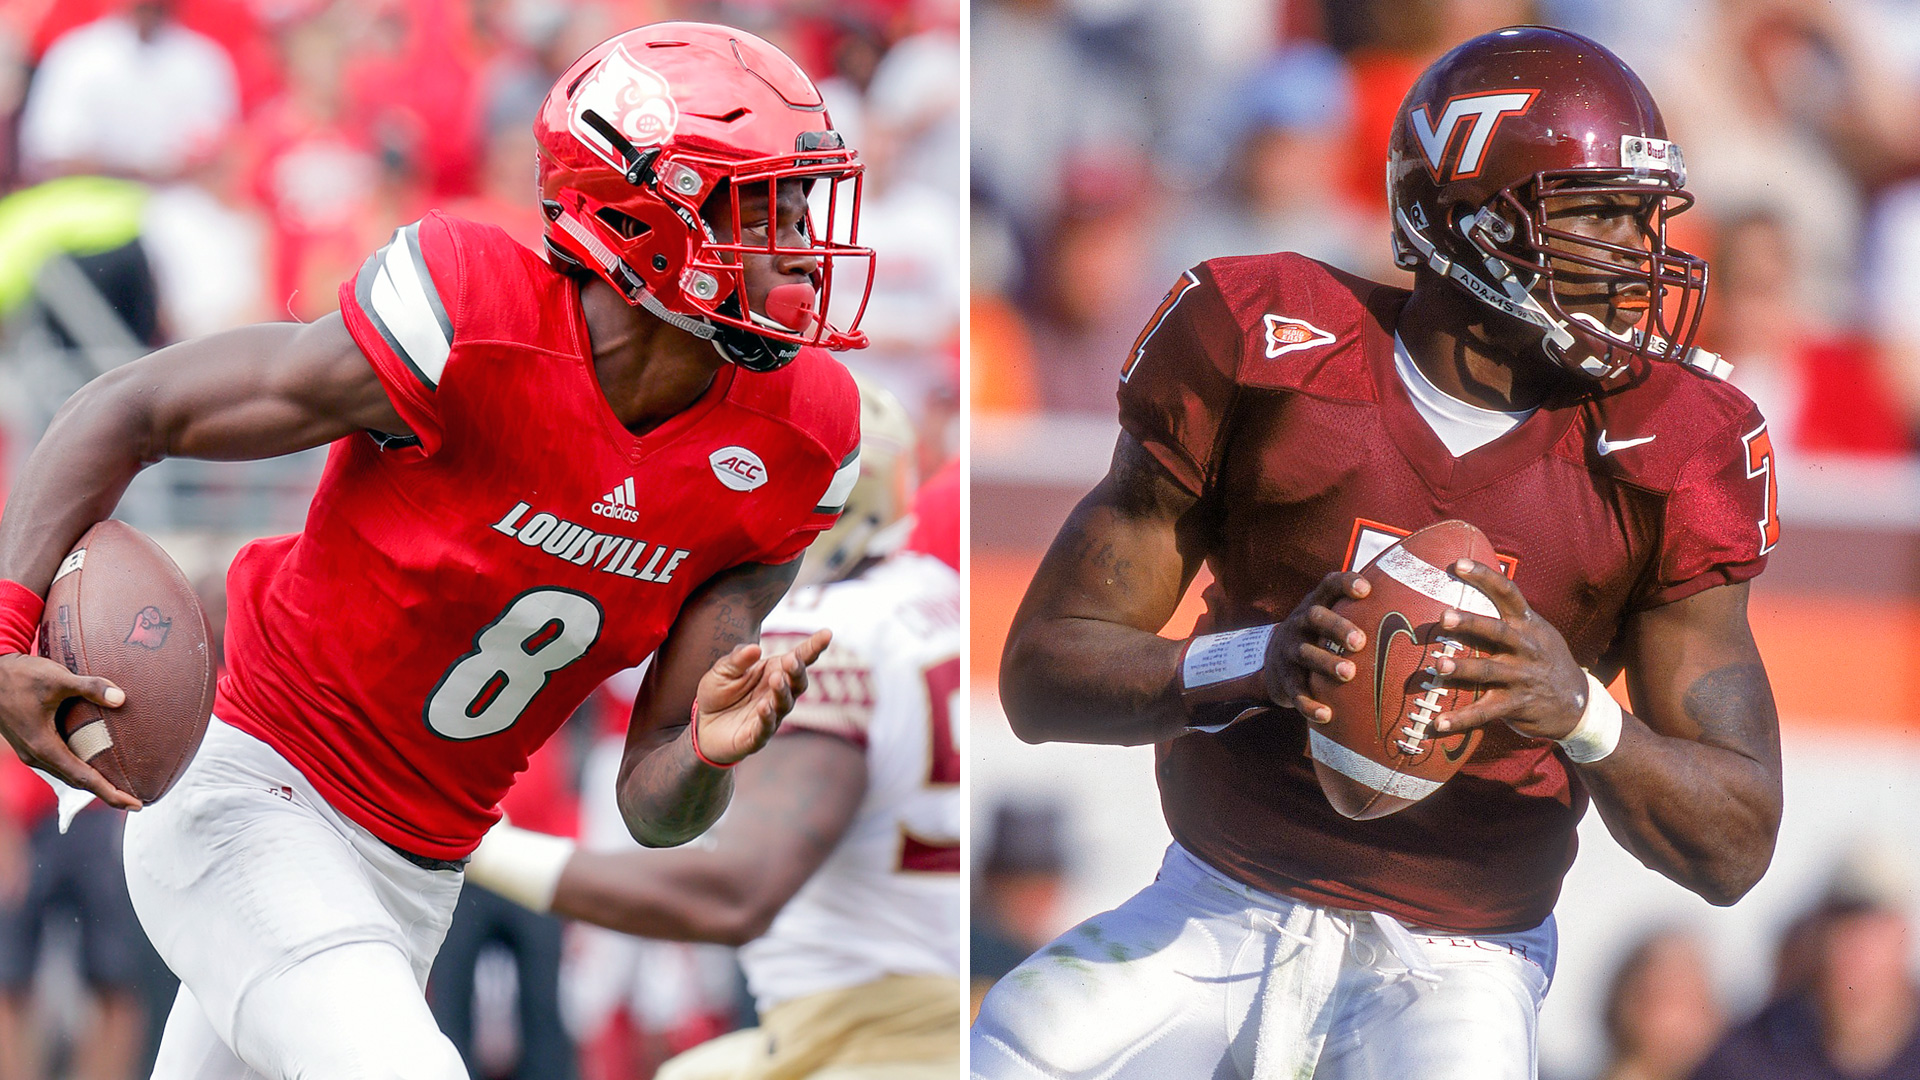 d673a5247421 Michael Vick says Lamar Jackson is already better than him | Sporting News